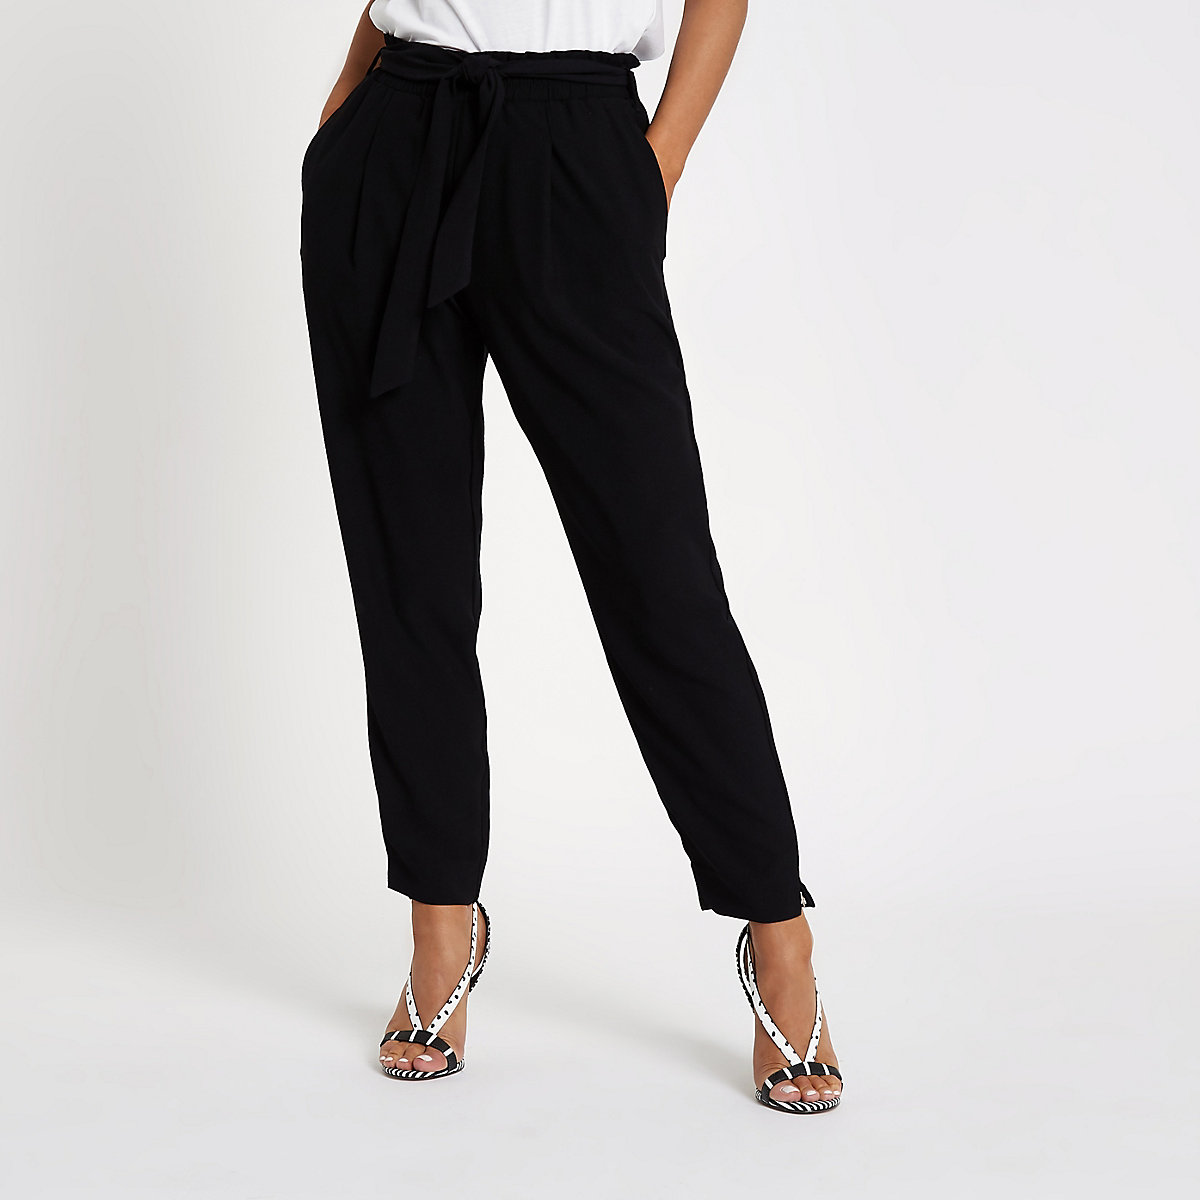 Petite black tie waist tapered trousers